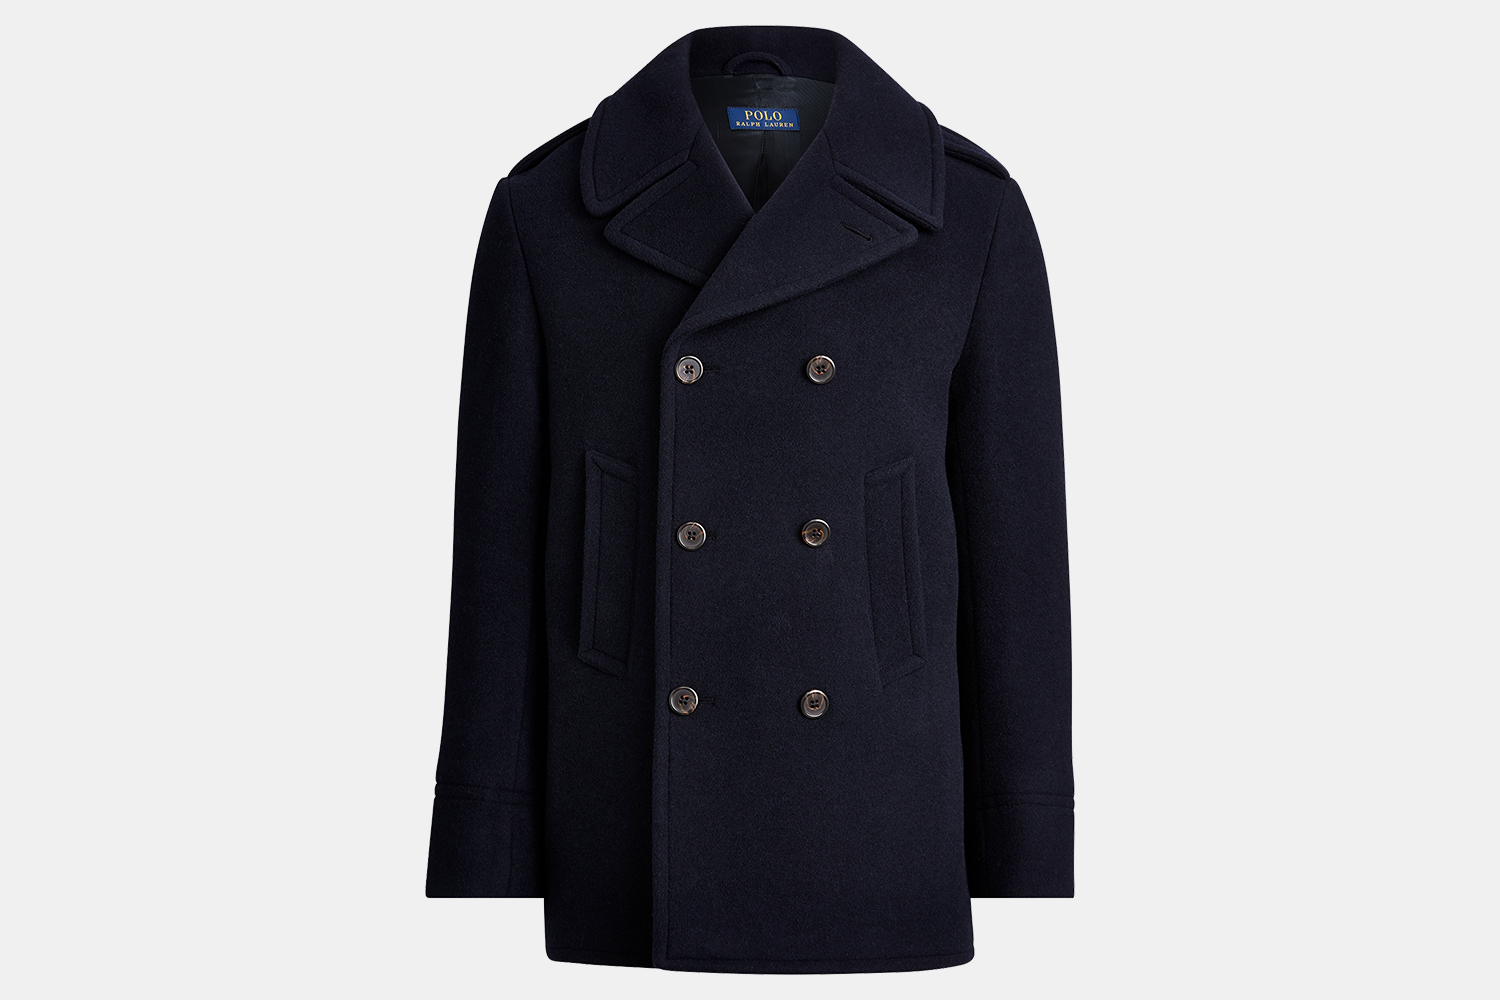 Deal: Ralph Lauren's Impeccable Outerwear Is 50% Off